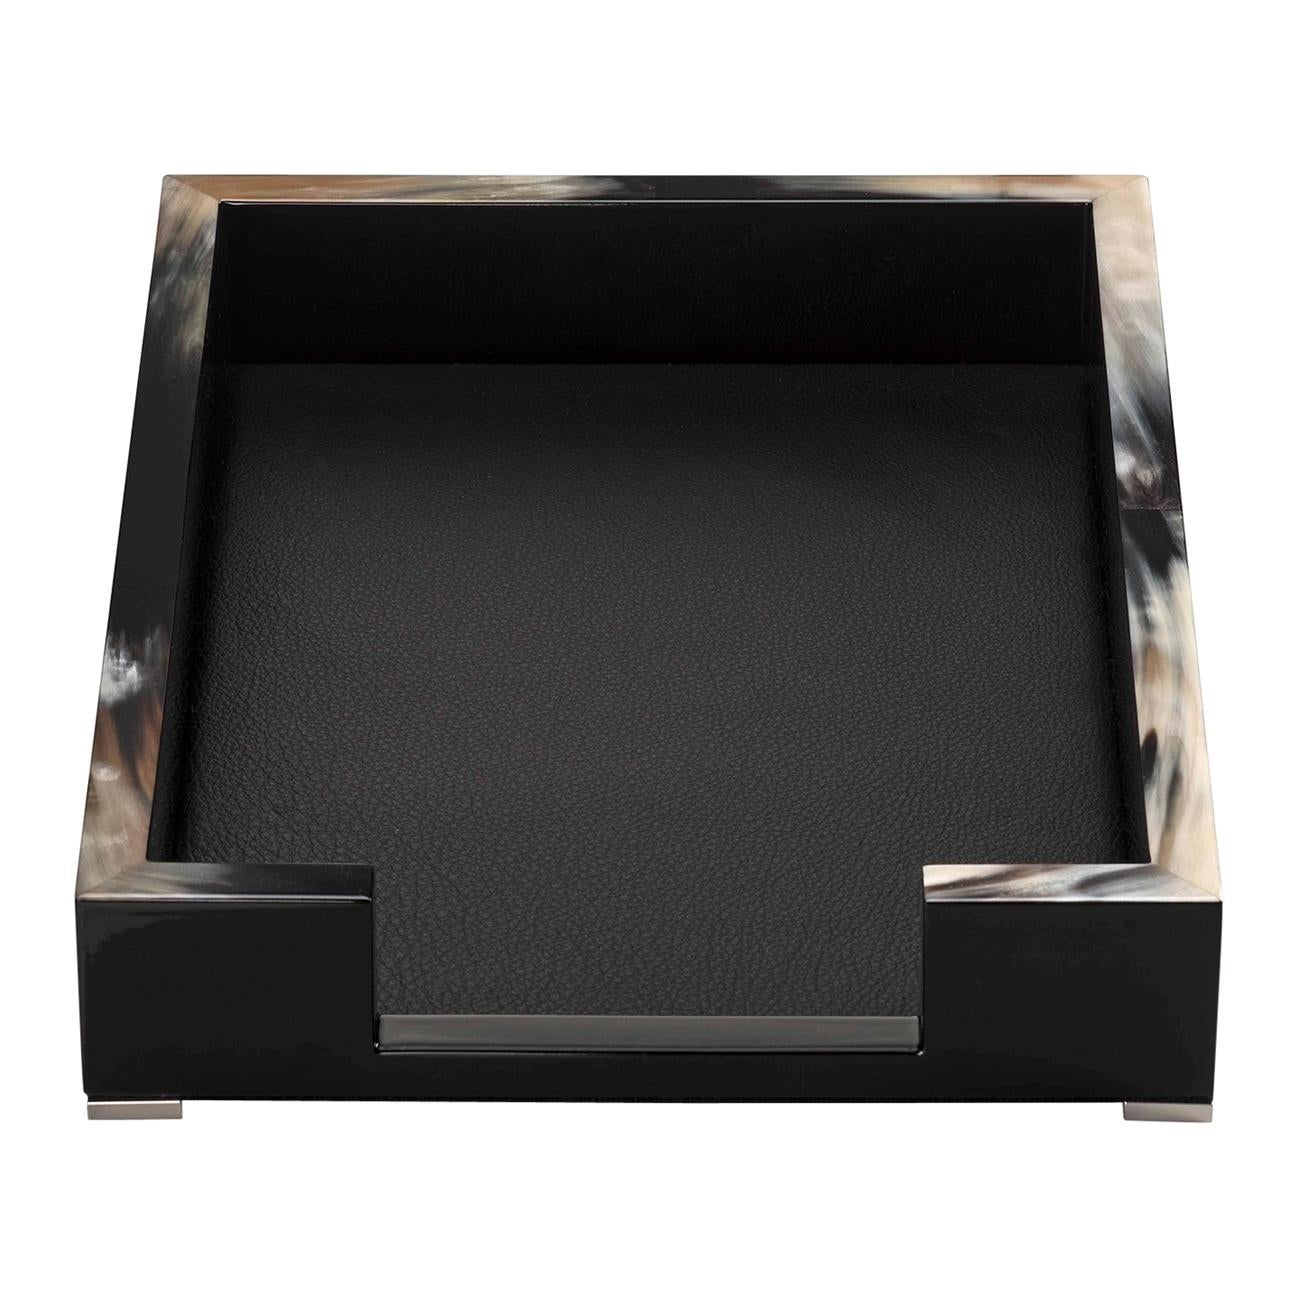 Calipso A4 Letter Tray in Corno Italiano, Lacquered Wood and Leather, Mod. 5303s